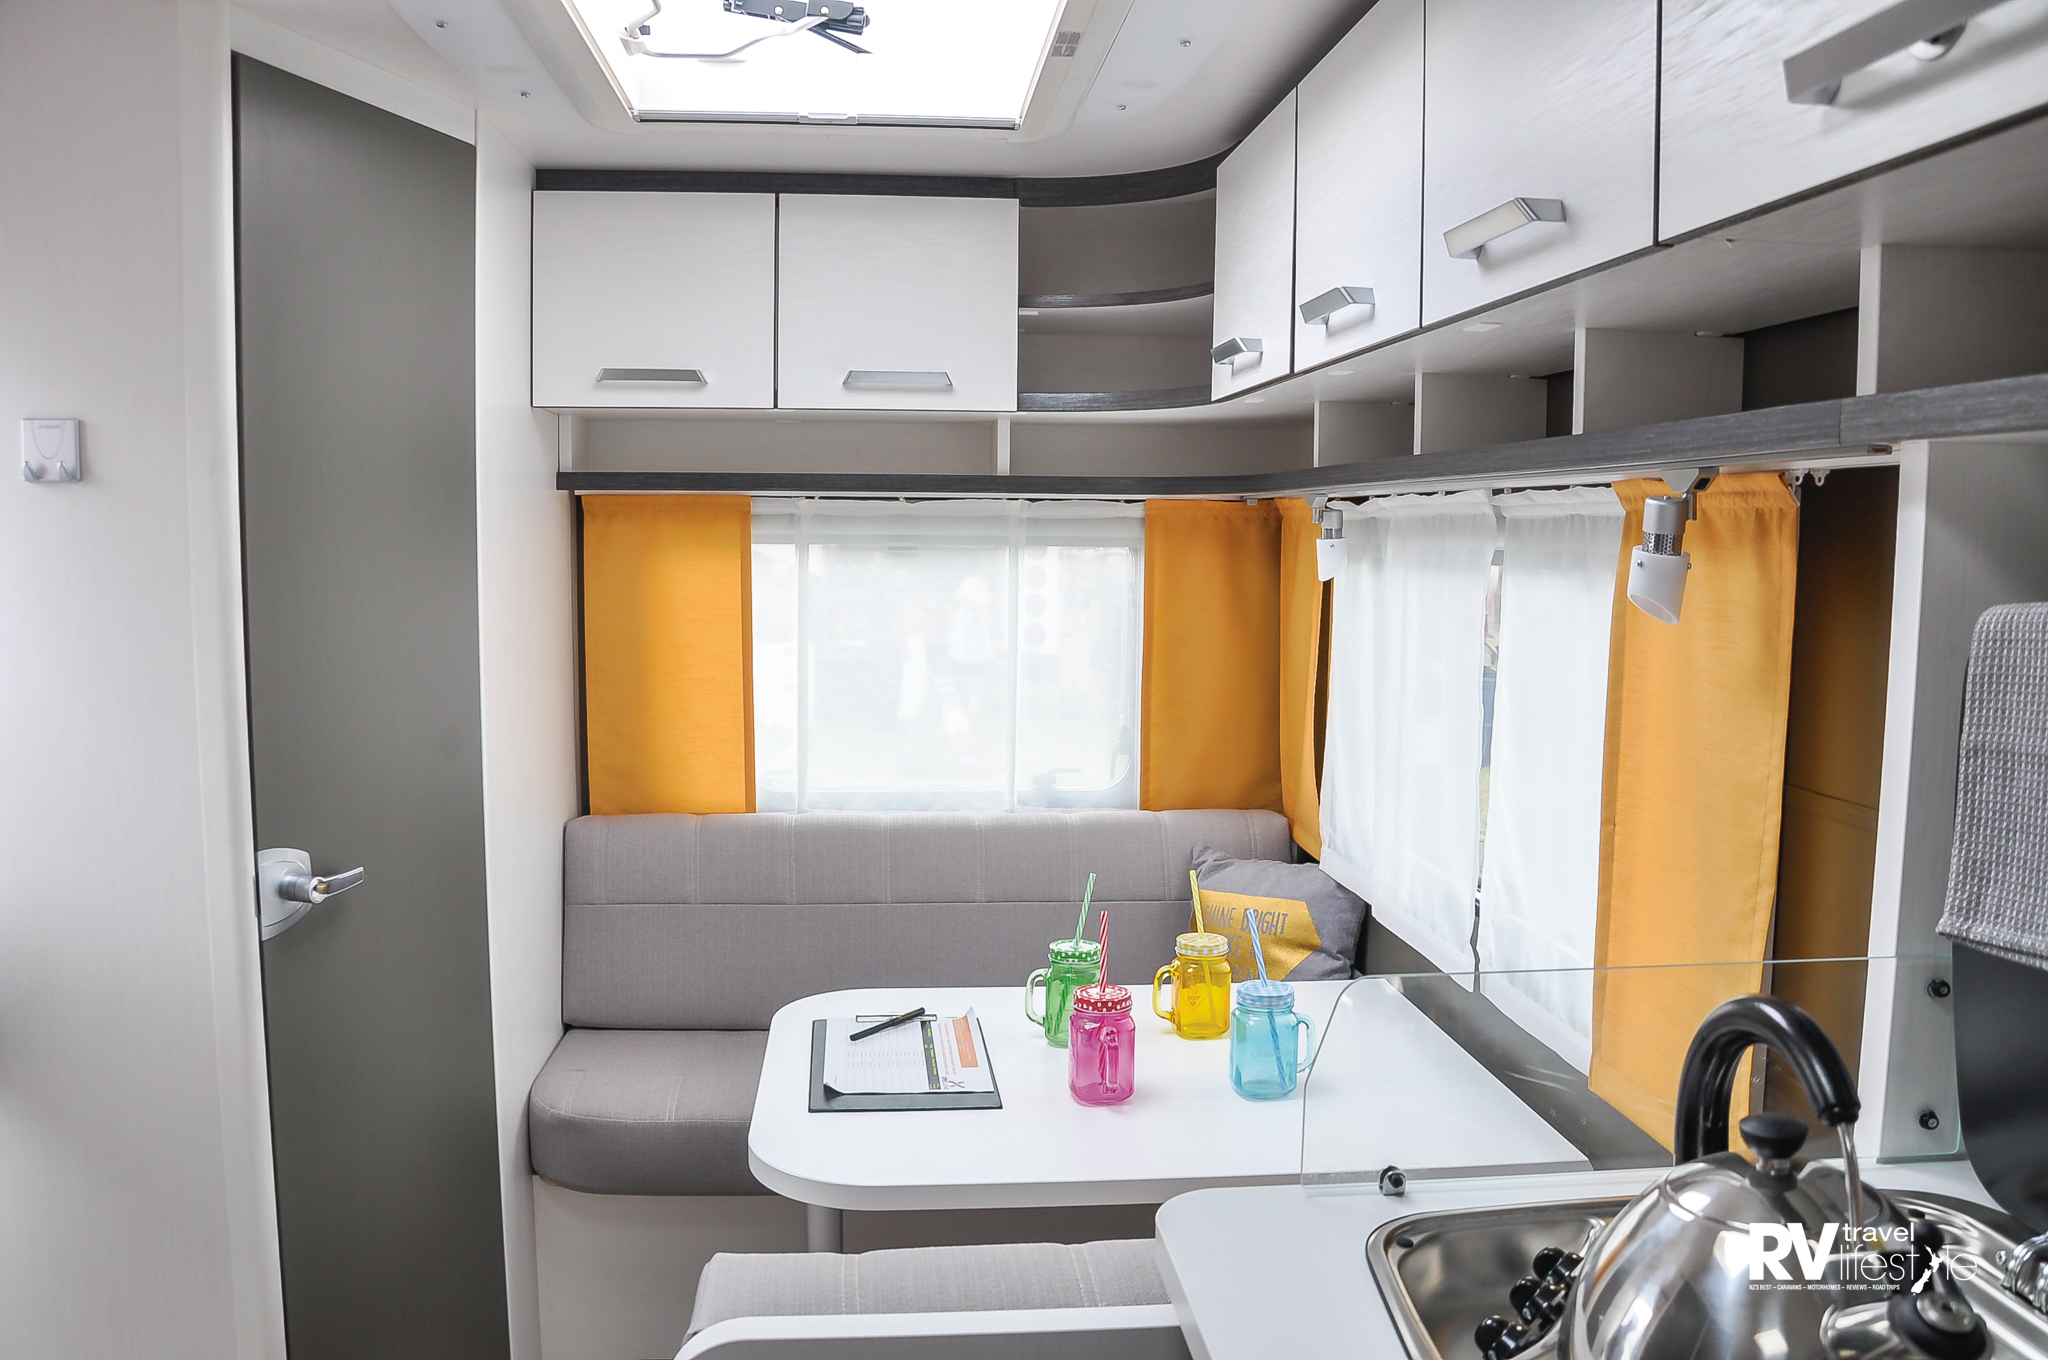 What a little cutie this is, look at all the cupboards and shelving storage. This is a three-berth model so the dining area converts to the third berth